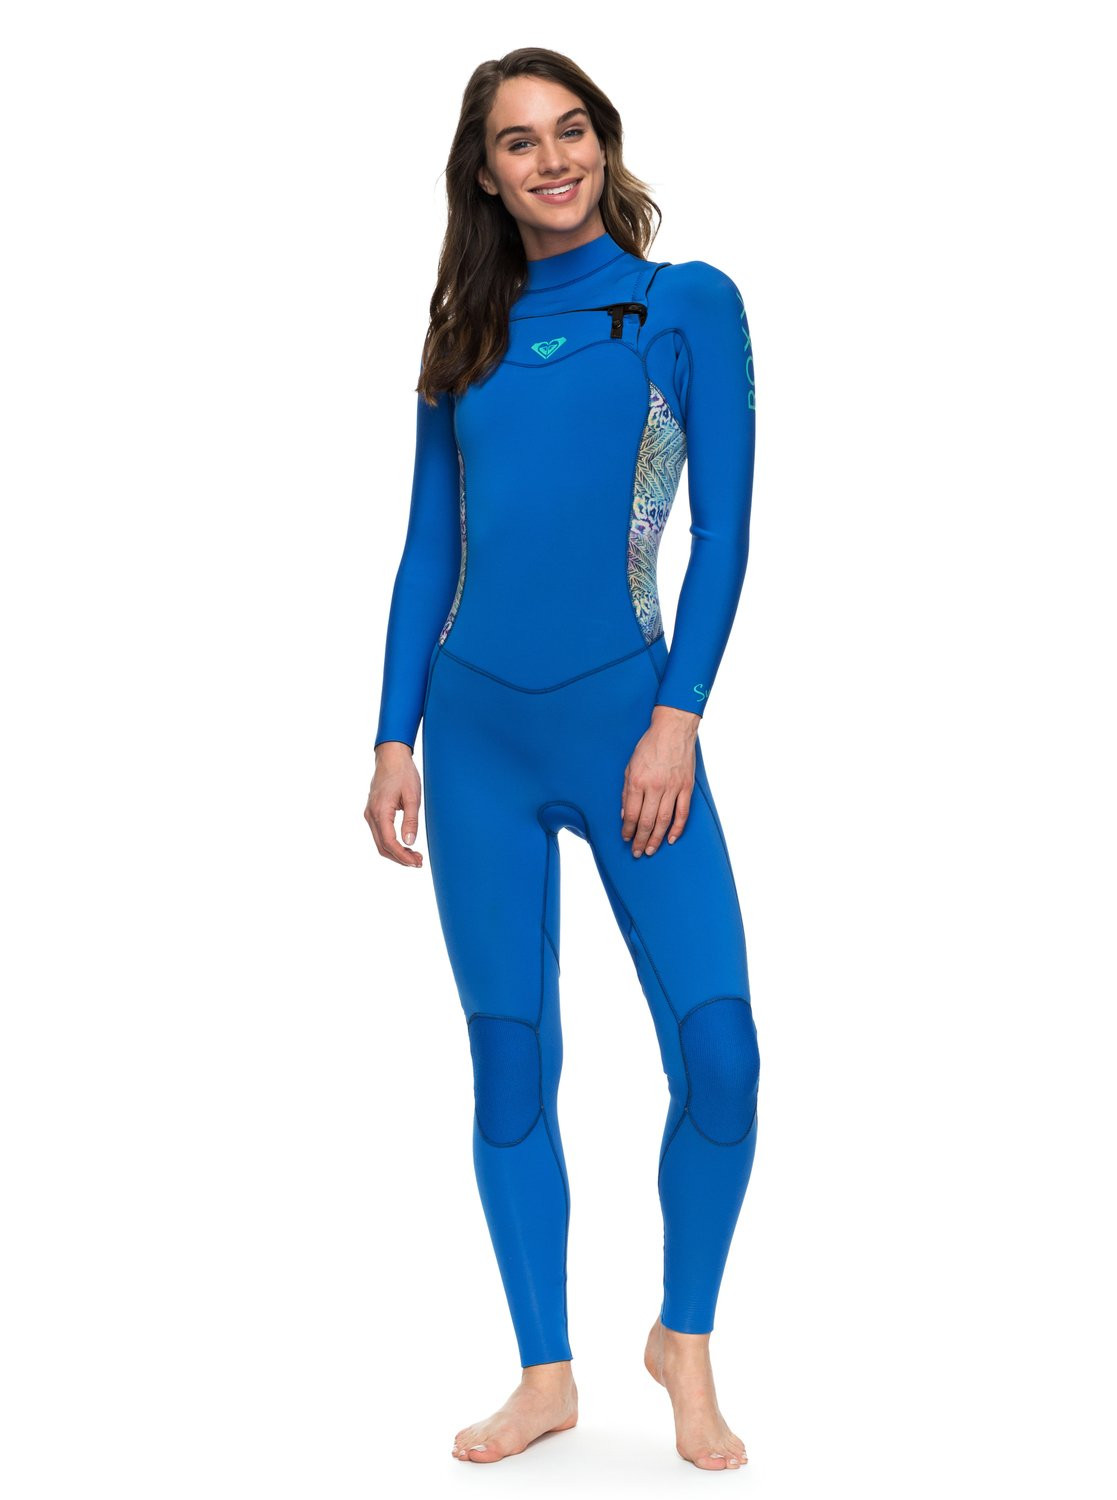 ROXY SYNCRO SERIES 3/2 WETSUIT